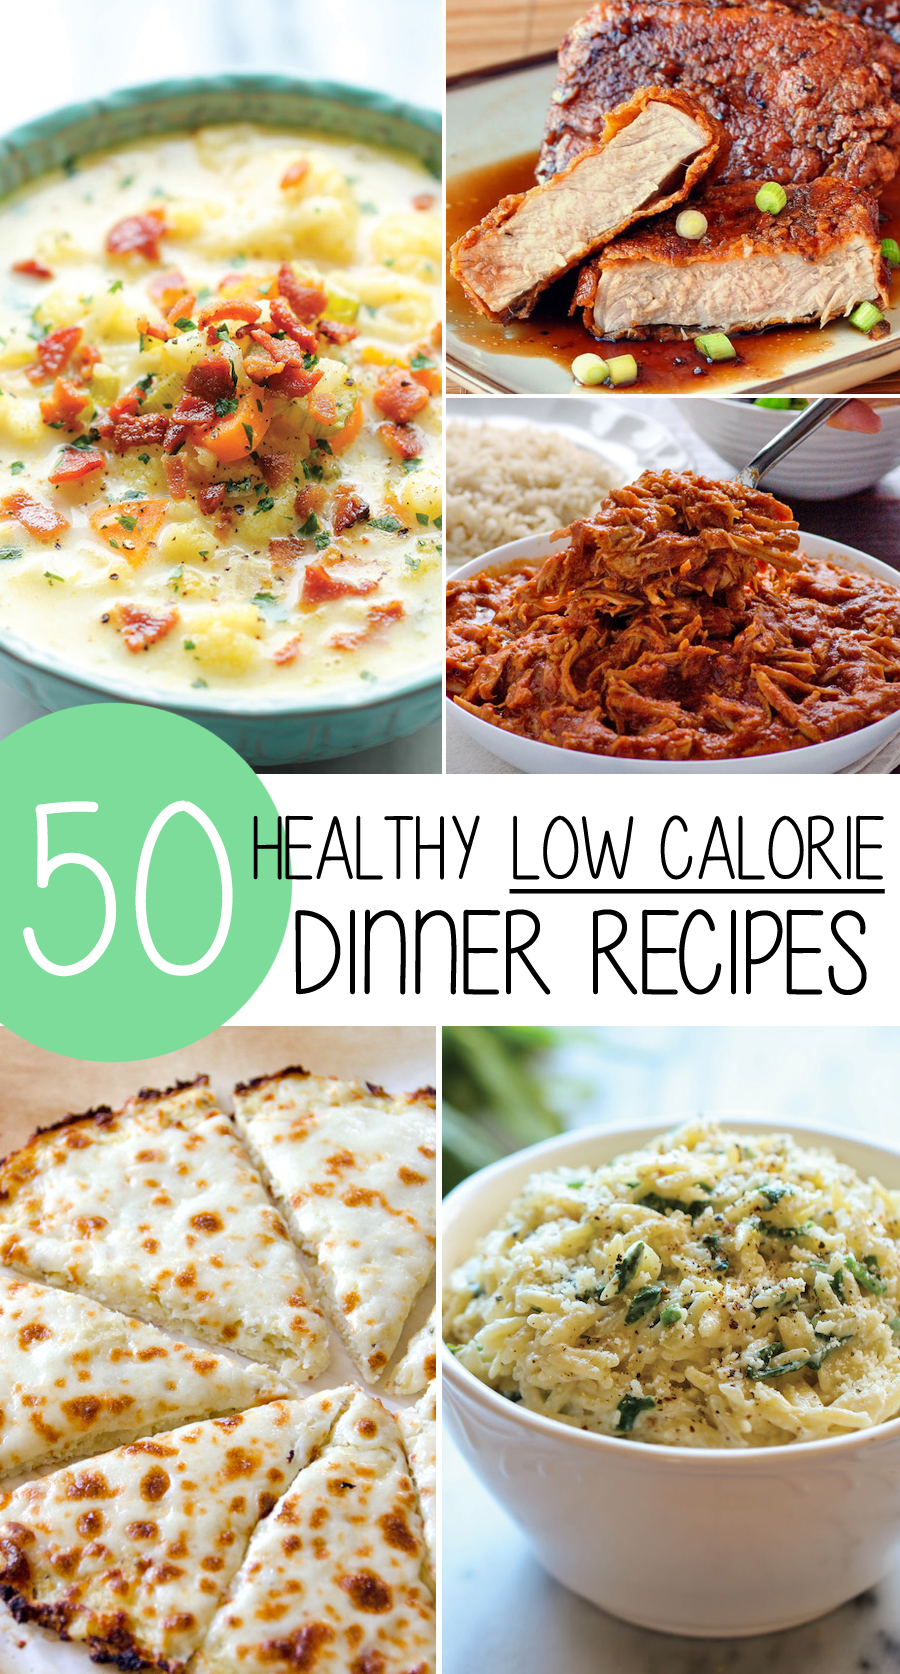 50 healthy low calorie weight loss dinner recipes 50 healthy low calorie dinner recipes forumfinder